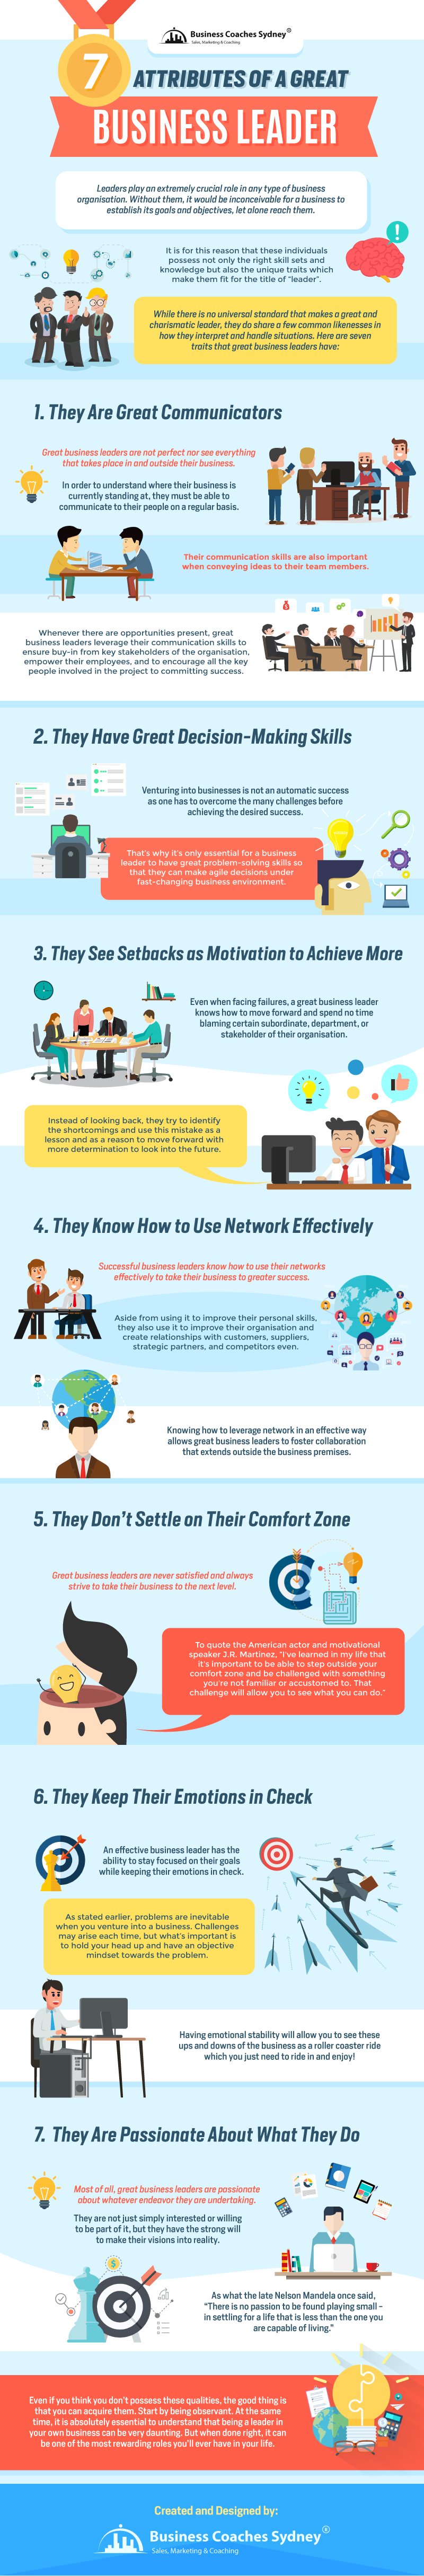 7 Attributes Of A Great Business Leader [INFOGRAPHIC]